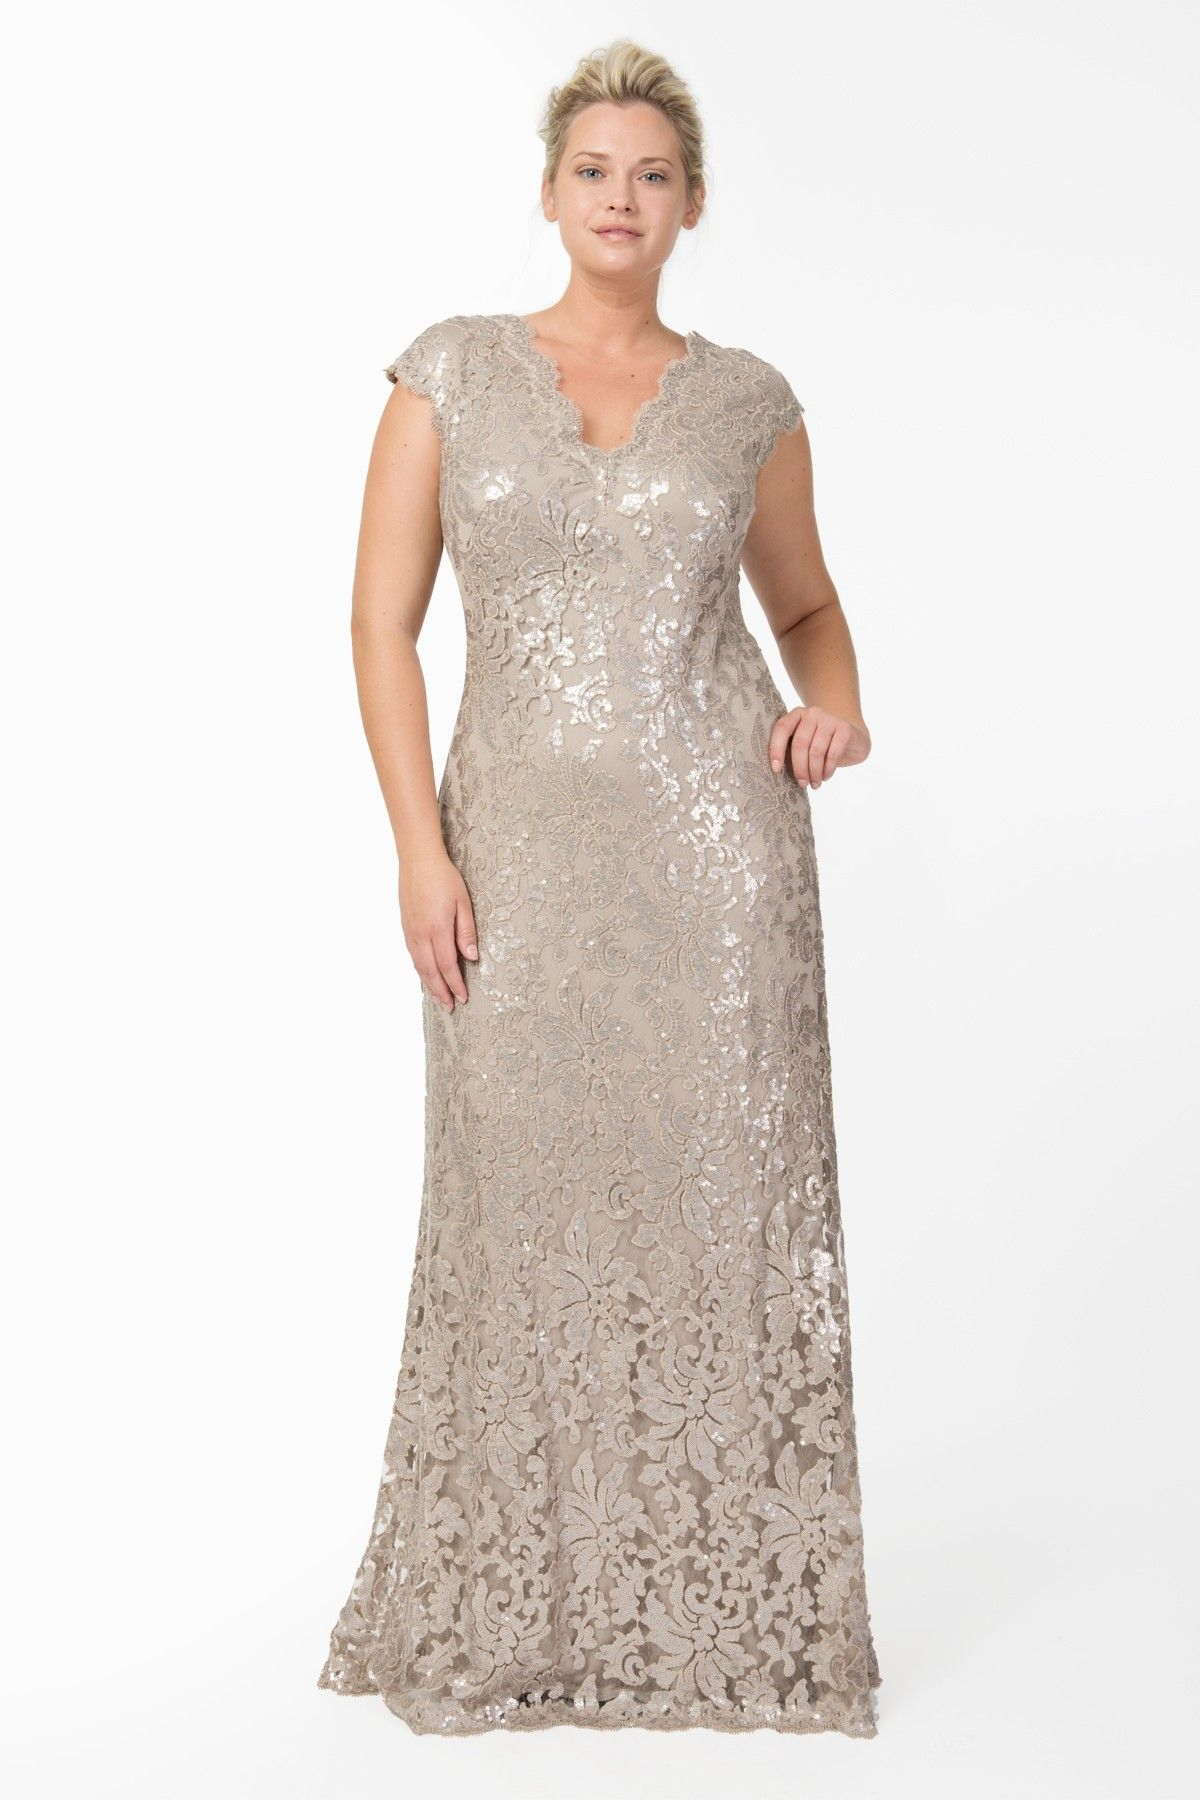 Silver wedding dresses plus size  Paillette Embroidered Lace Scalloped VNeck Gown in Sand  Plus Size